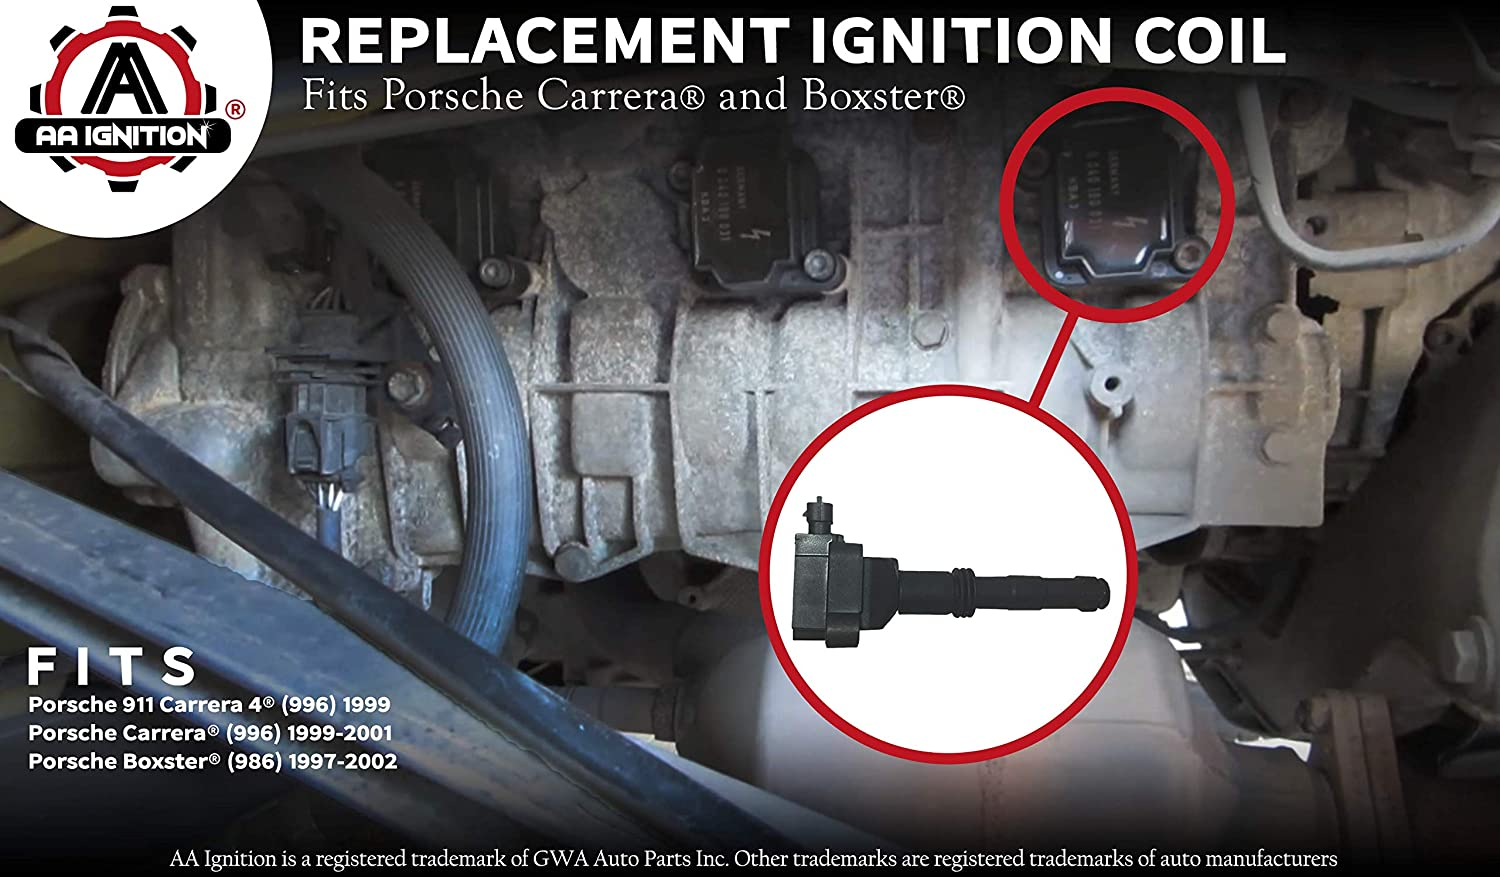 Amazon.com: Ignition Coil Pack- Replaces# 99760210700, 99660210200, 99660210101 - Fits Porsche 911 Carrera and Boxster: Automotive